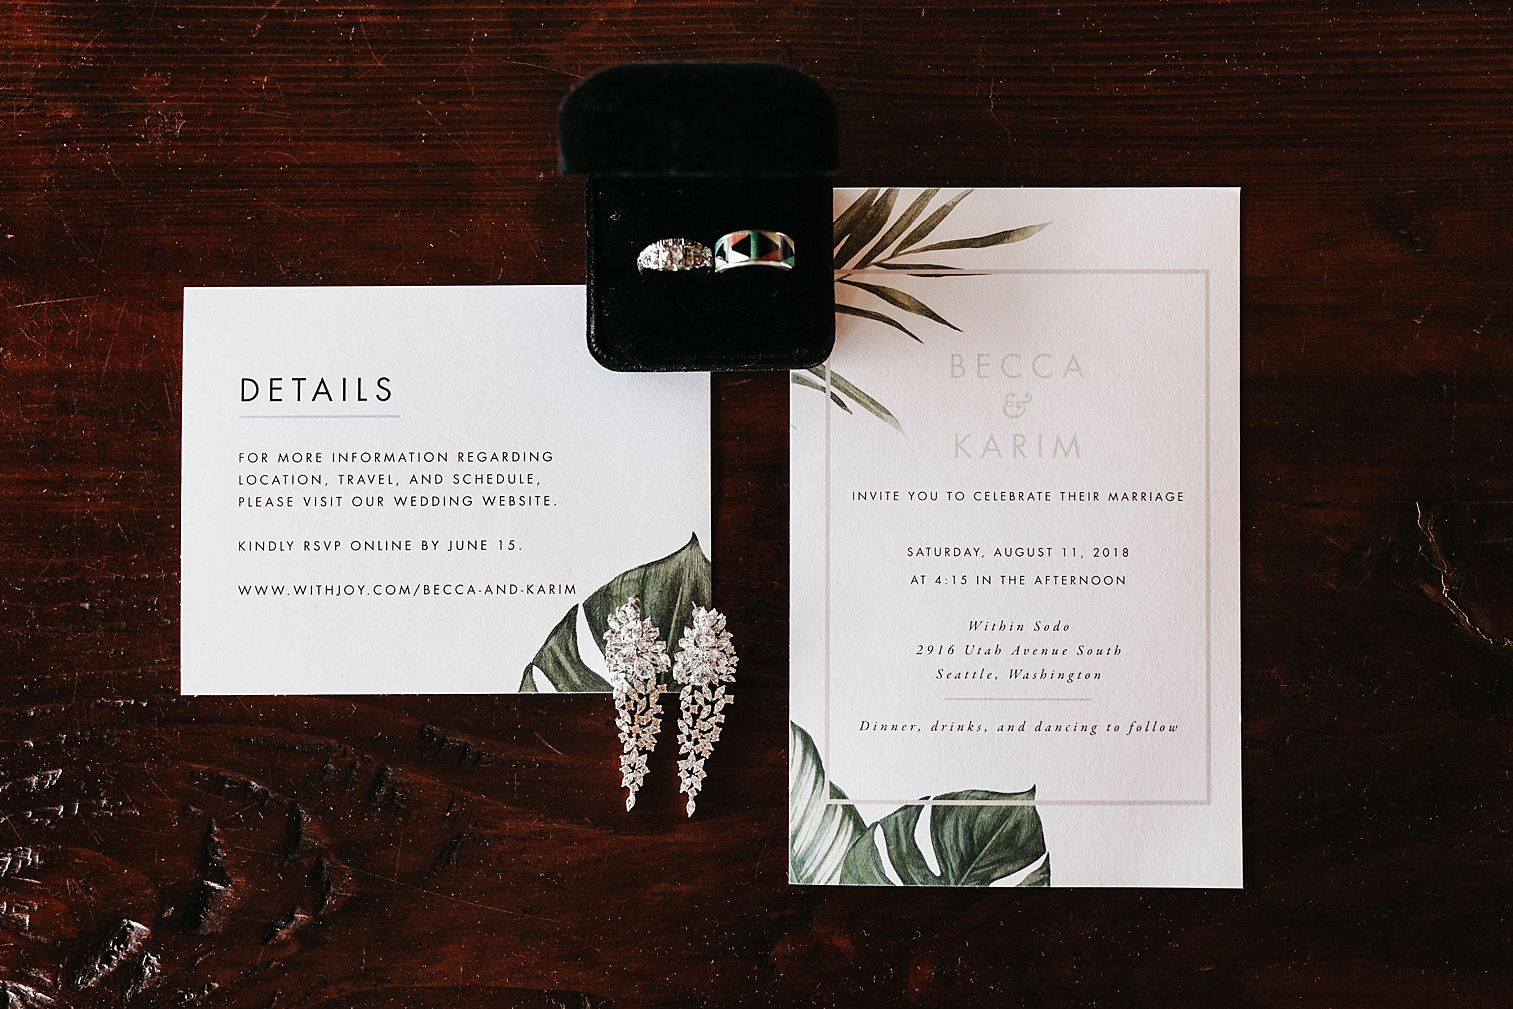 Tropical-Vintage-Within-Sodo-Wedding-10.jpg